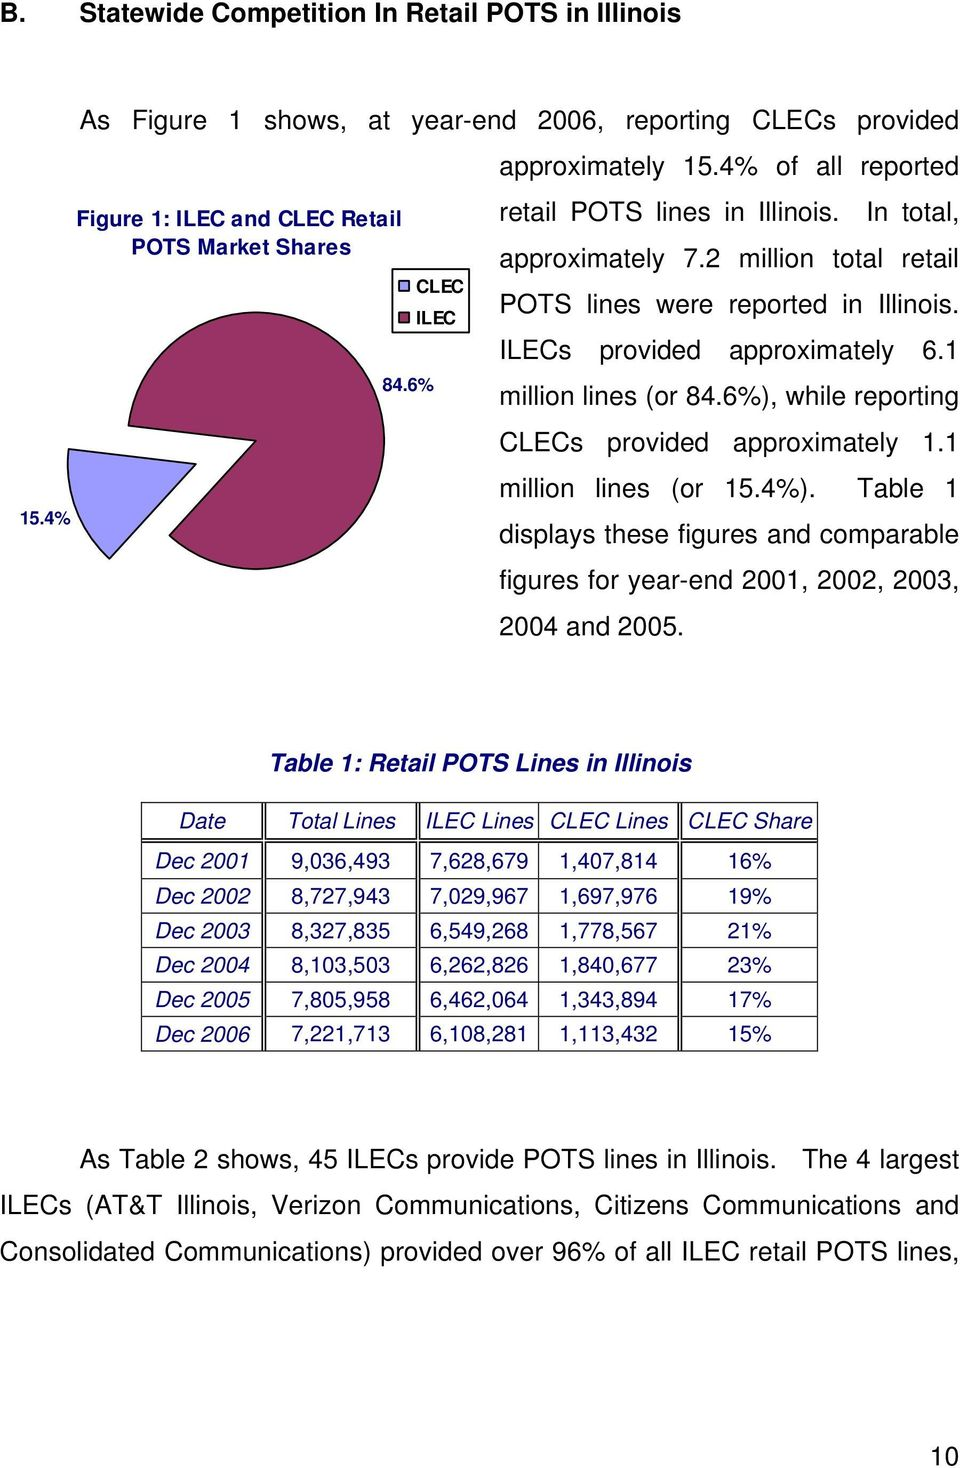 ILECs provided approximately 6.1 million lines (or 84.6%), while reporting CLECs provided approximately 1.1 million lines (or 15.4%).